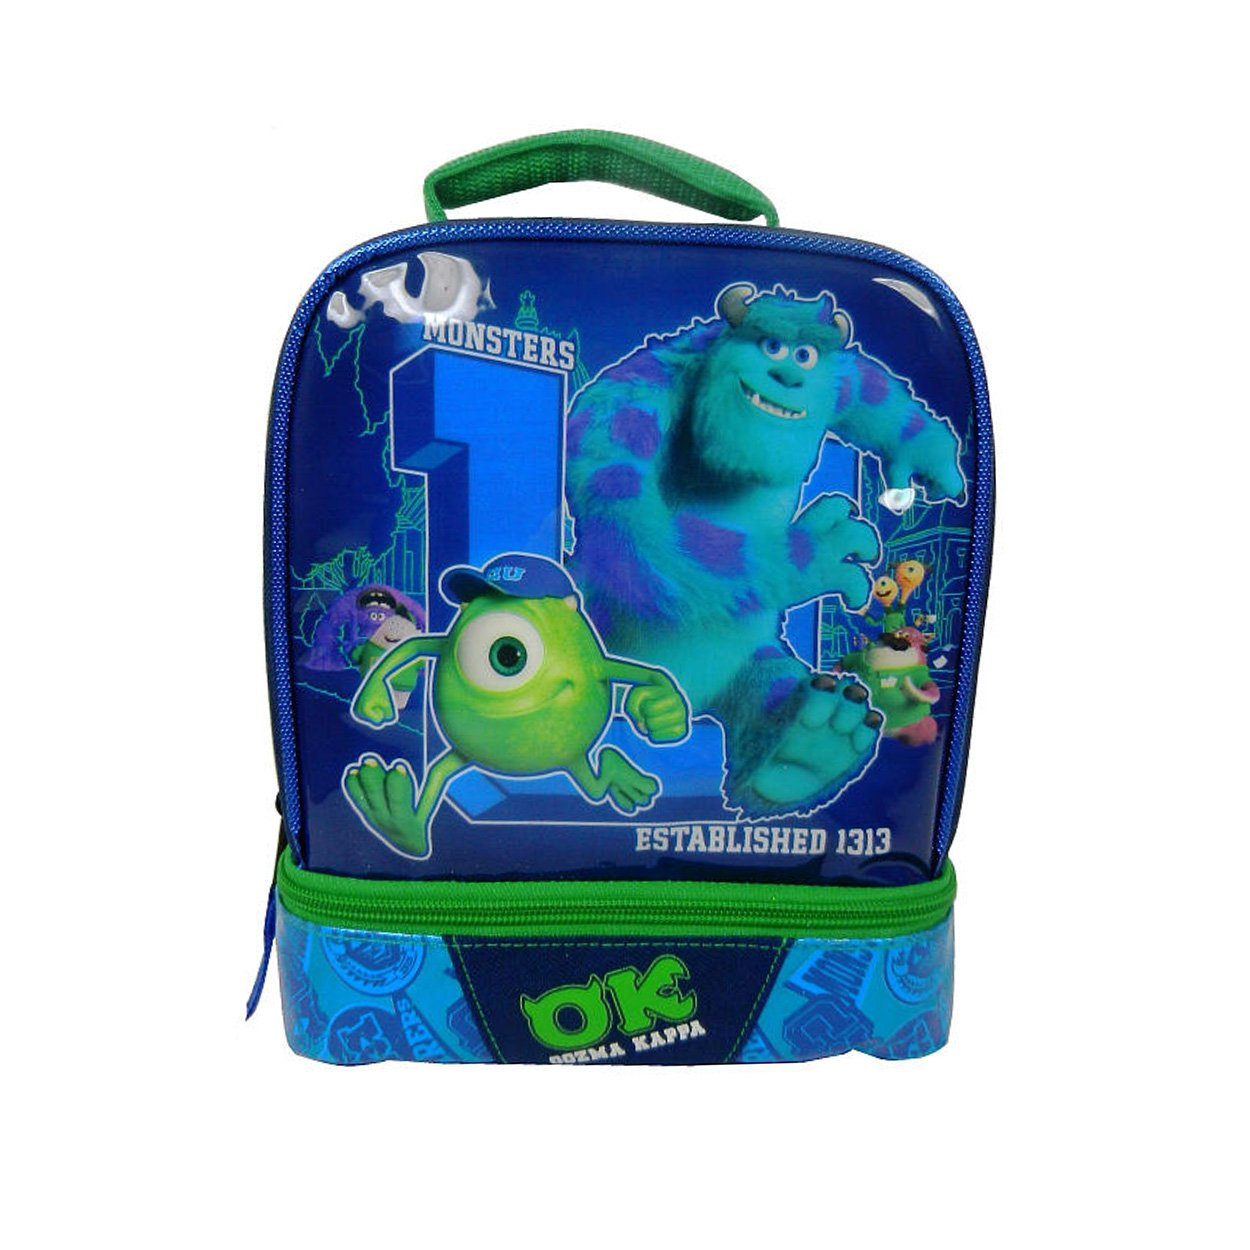 Monsters U OK Dual Compartment Kids Lunchbox